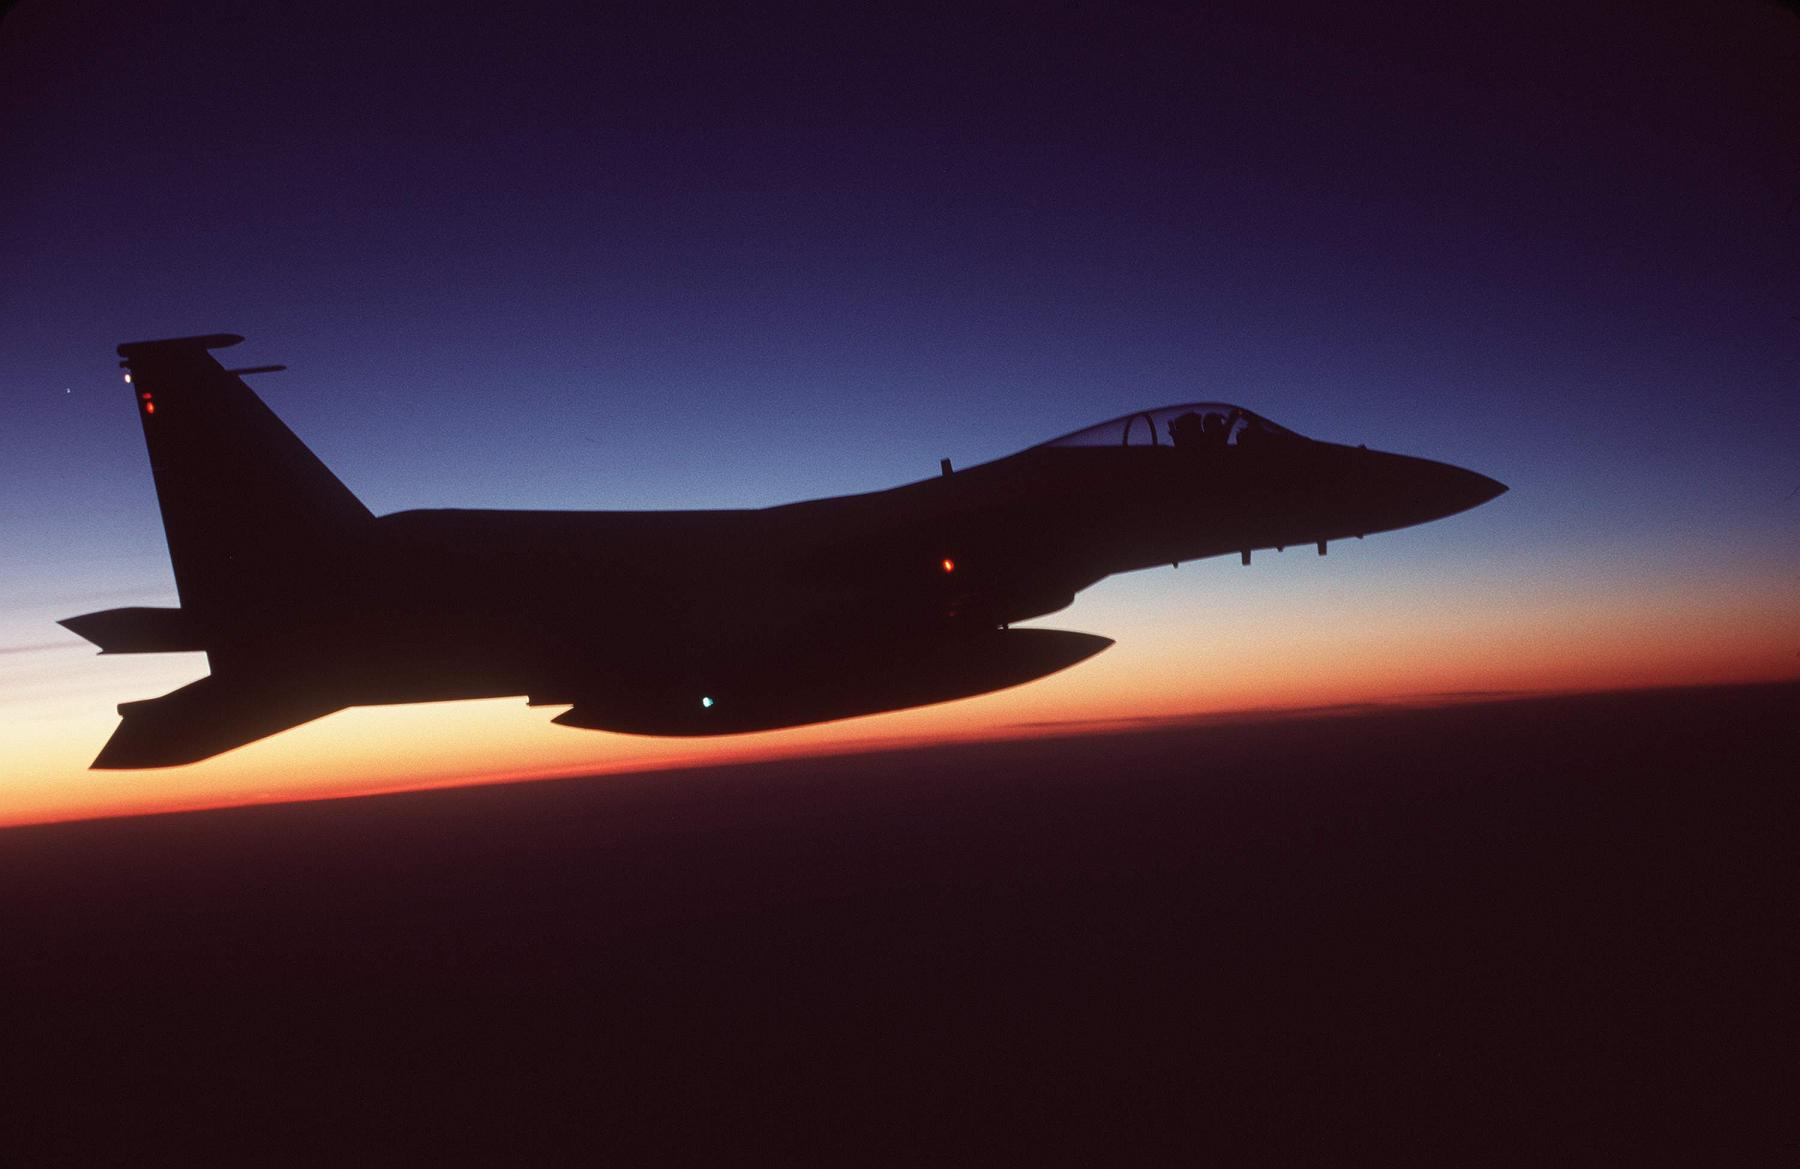 F-15C Eagle - The silhouette of an F-15C.